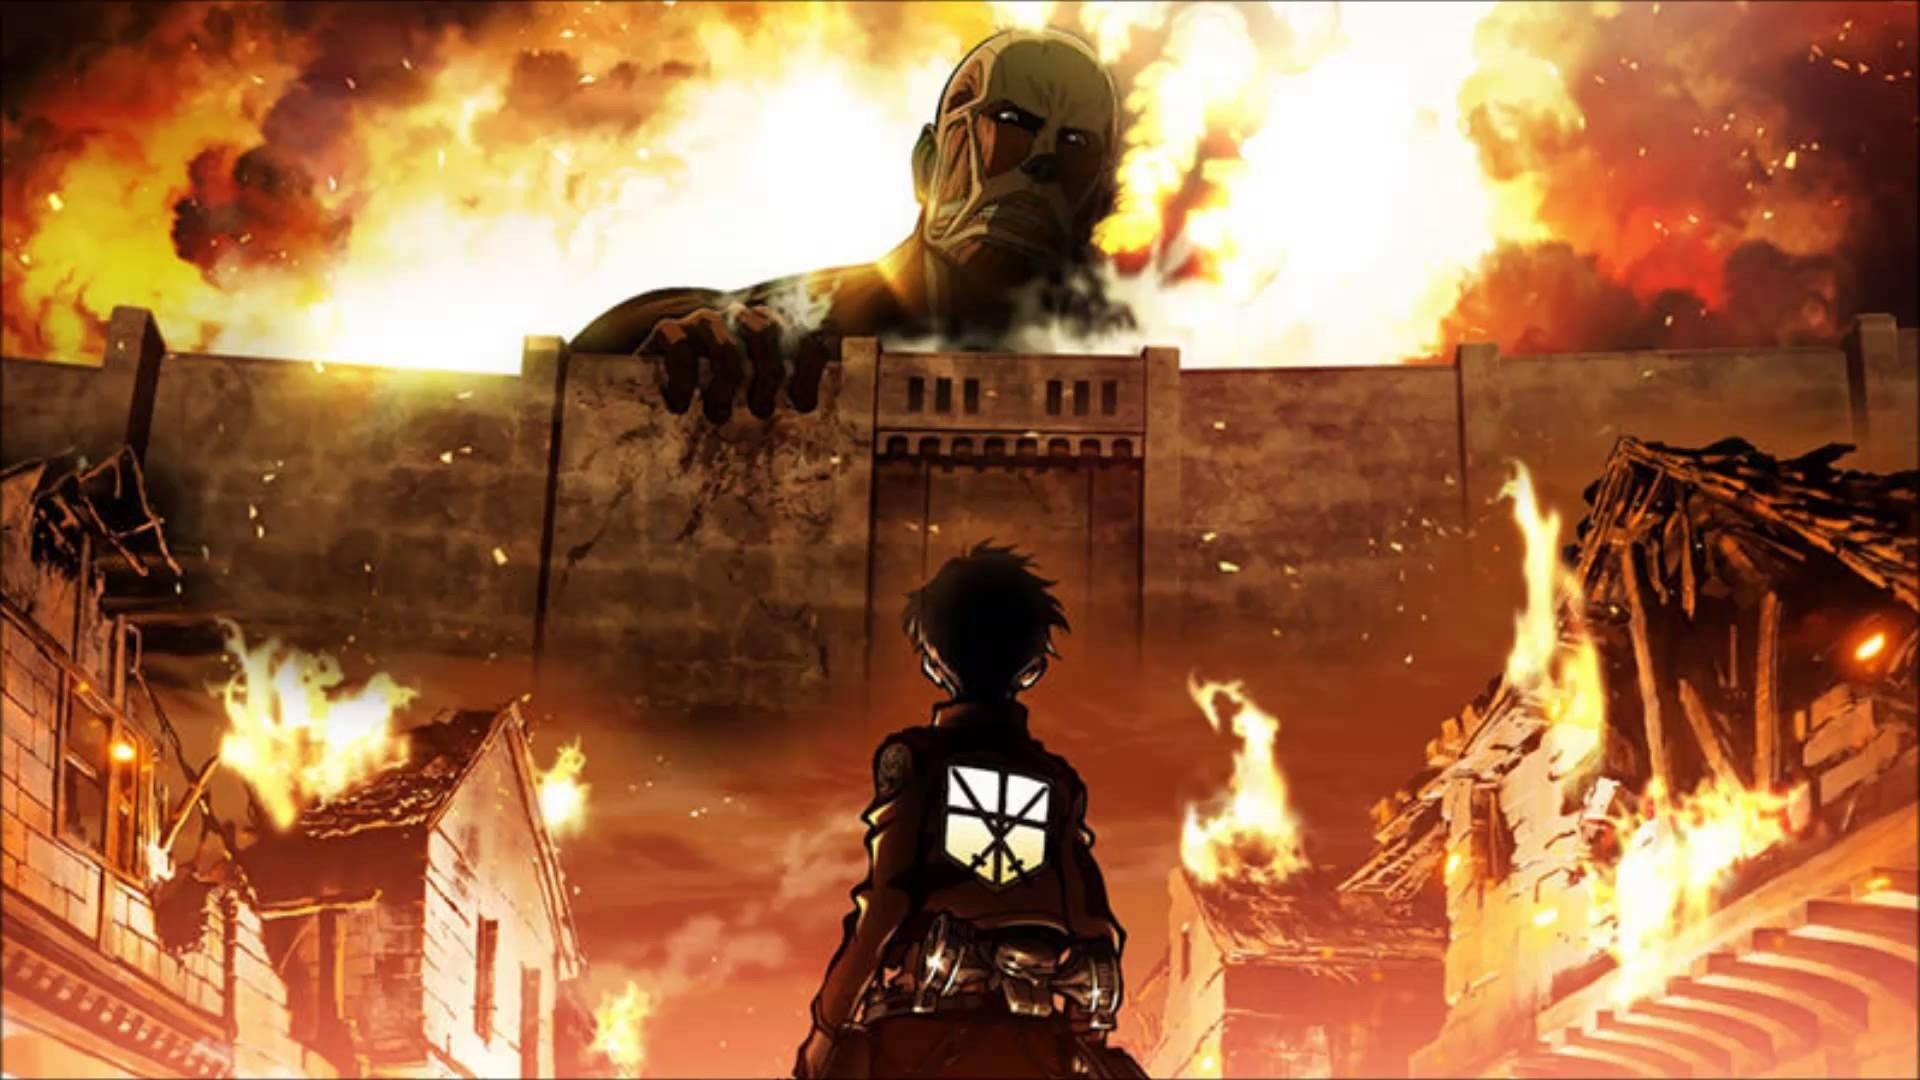 Attack on Titan Episode 66 Synopsis, Spoilers and Preview Trailer